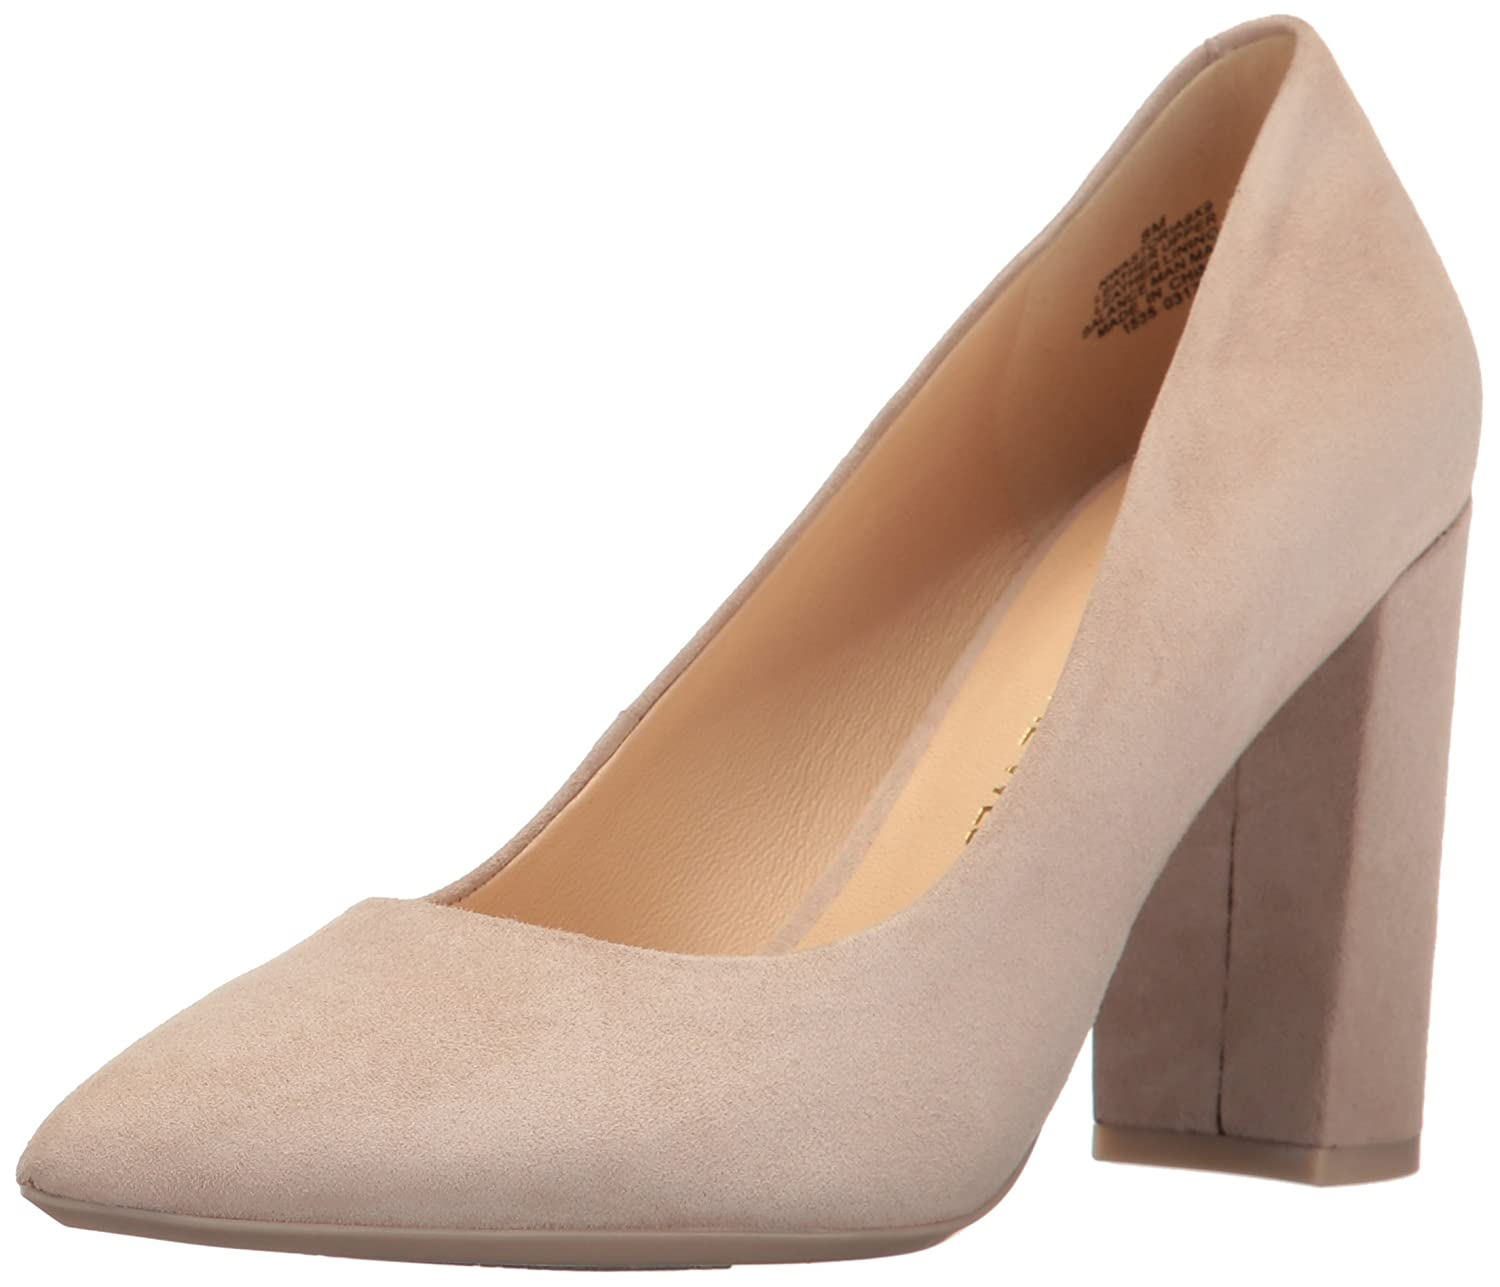 Nine West Women's Astoria Pump B06X3VHVZT 10.5 B(M) US|Light Natural Suede